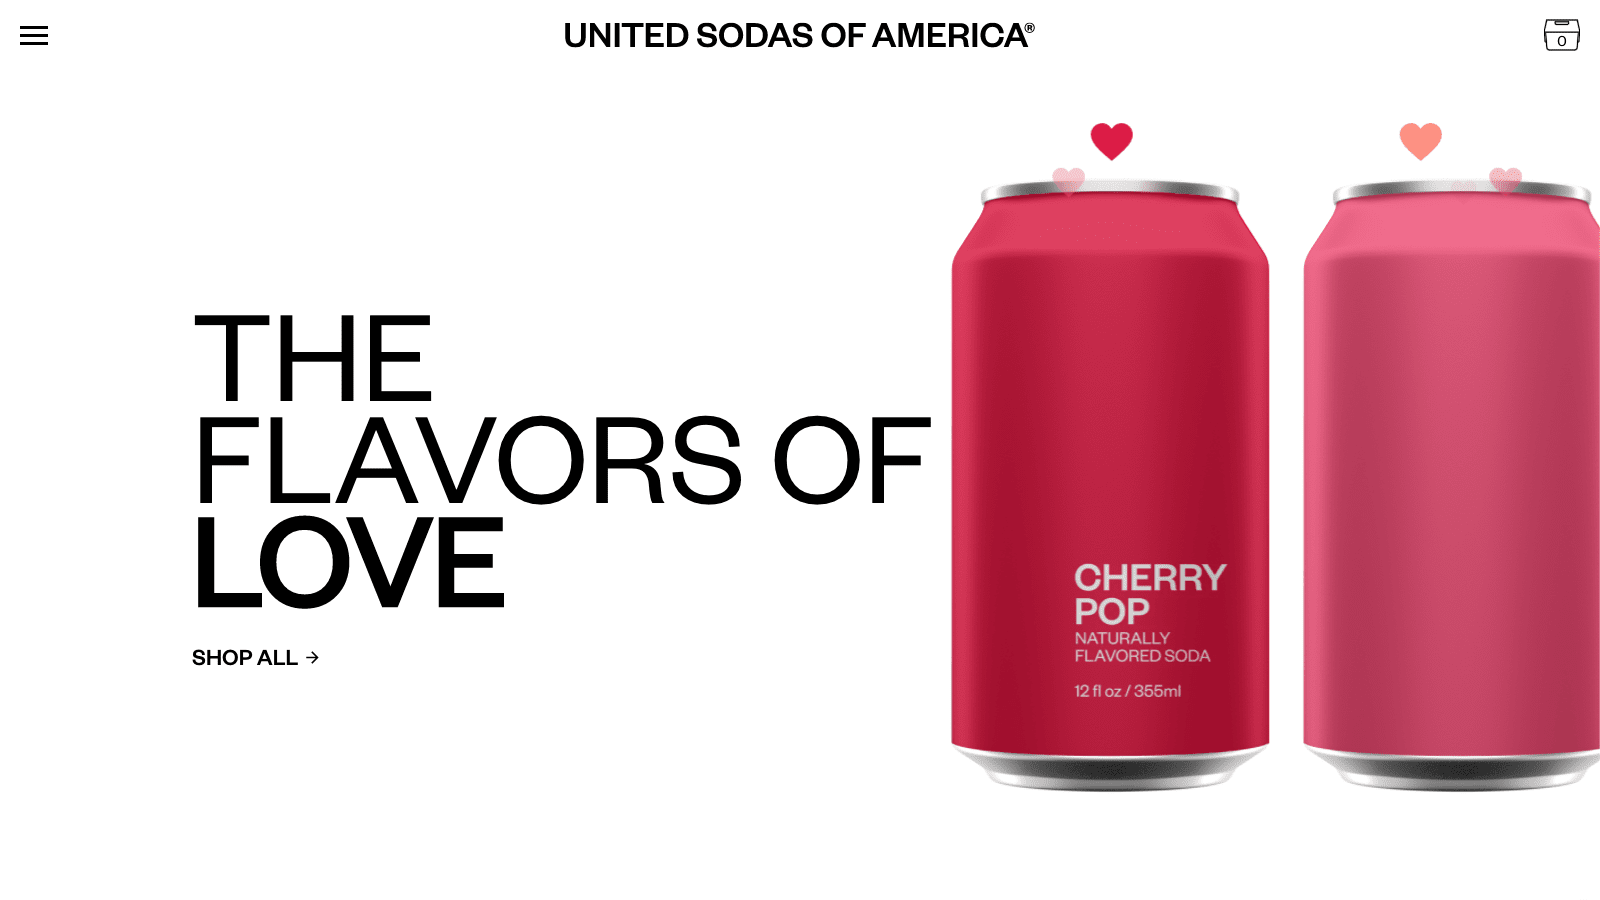 United Sodas of America